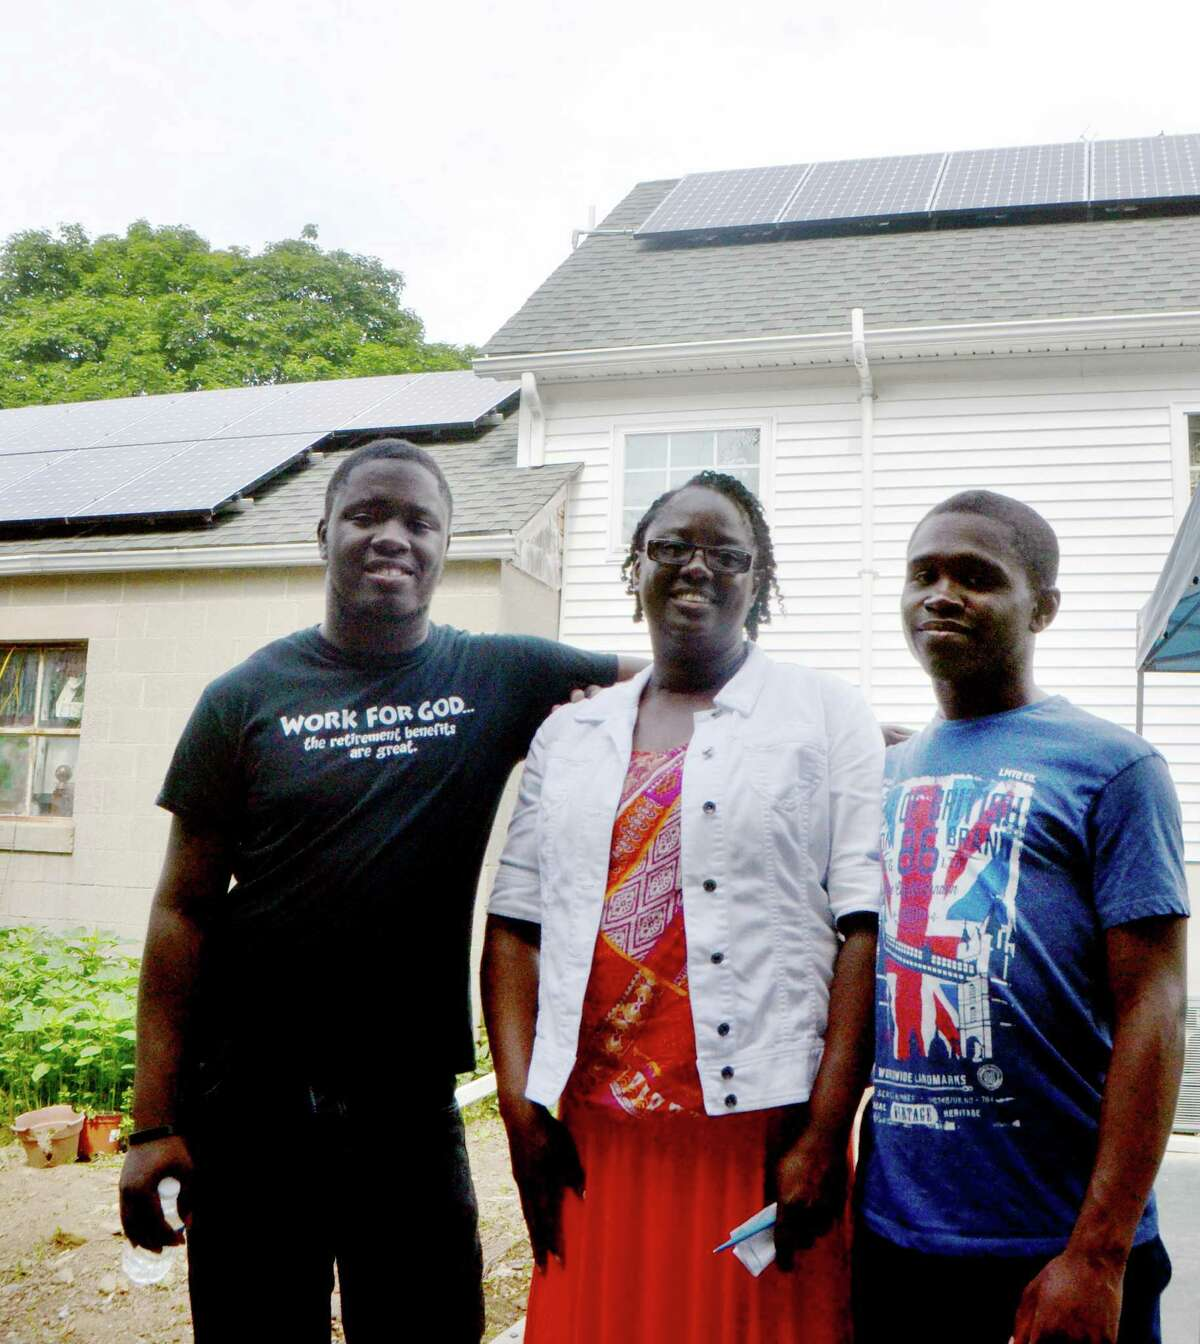 Susan Young and her sons, twenty-two year old Jason and seventeen-year old Shawn, pose in front of the solar panels on their home in Bridgeport, Conn. on Tuesday, July 21, 2015. The Young's installation of solar power, as well as other energy efficiency measures, are financed through a public-private partnership between the Connecticut Green Bank and PosiGen and contribute 80-90% of their energy usage.